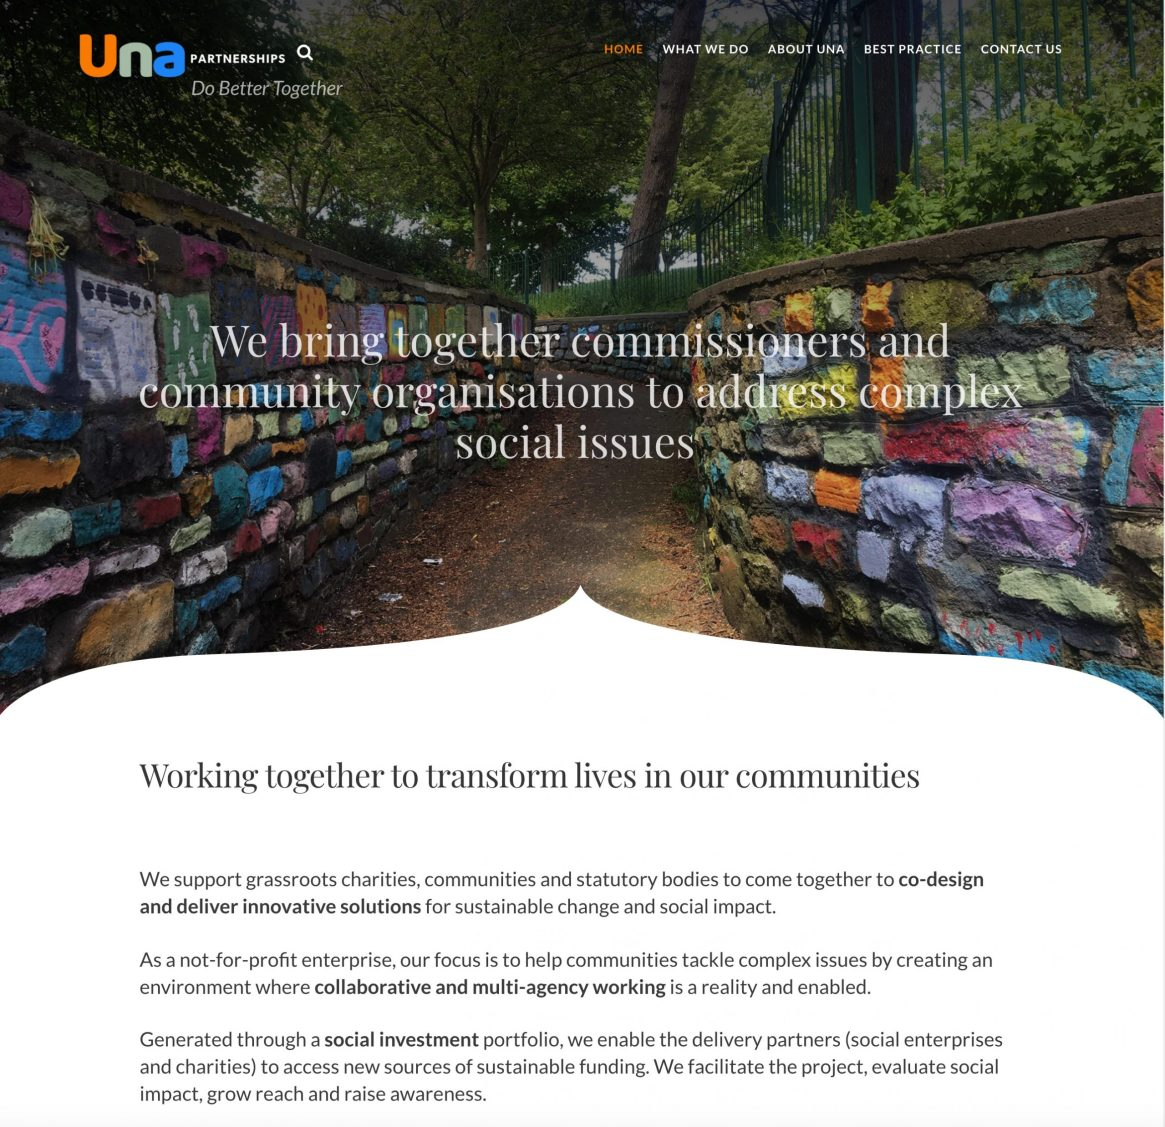 Una Partnerships facilitating community development, best practise and social impact